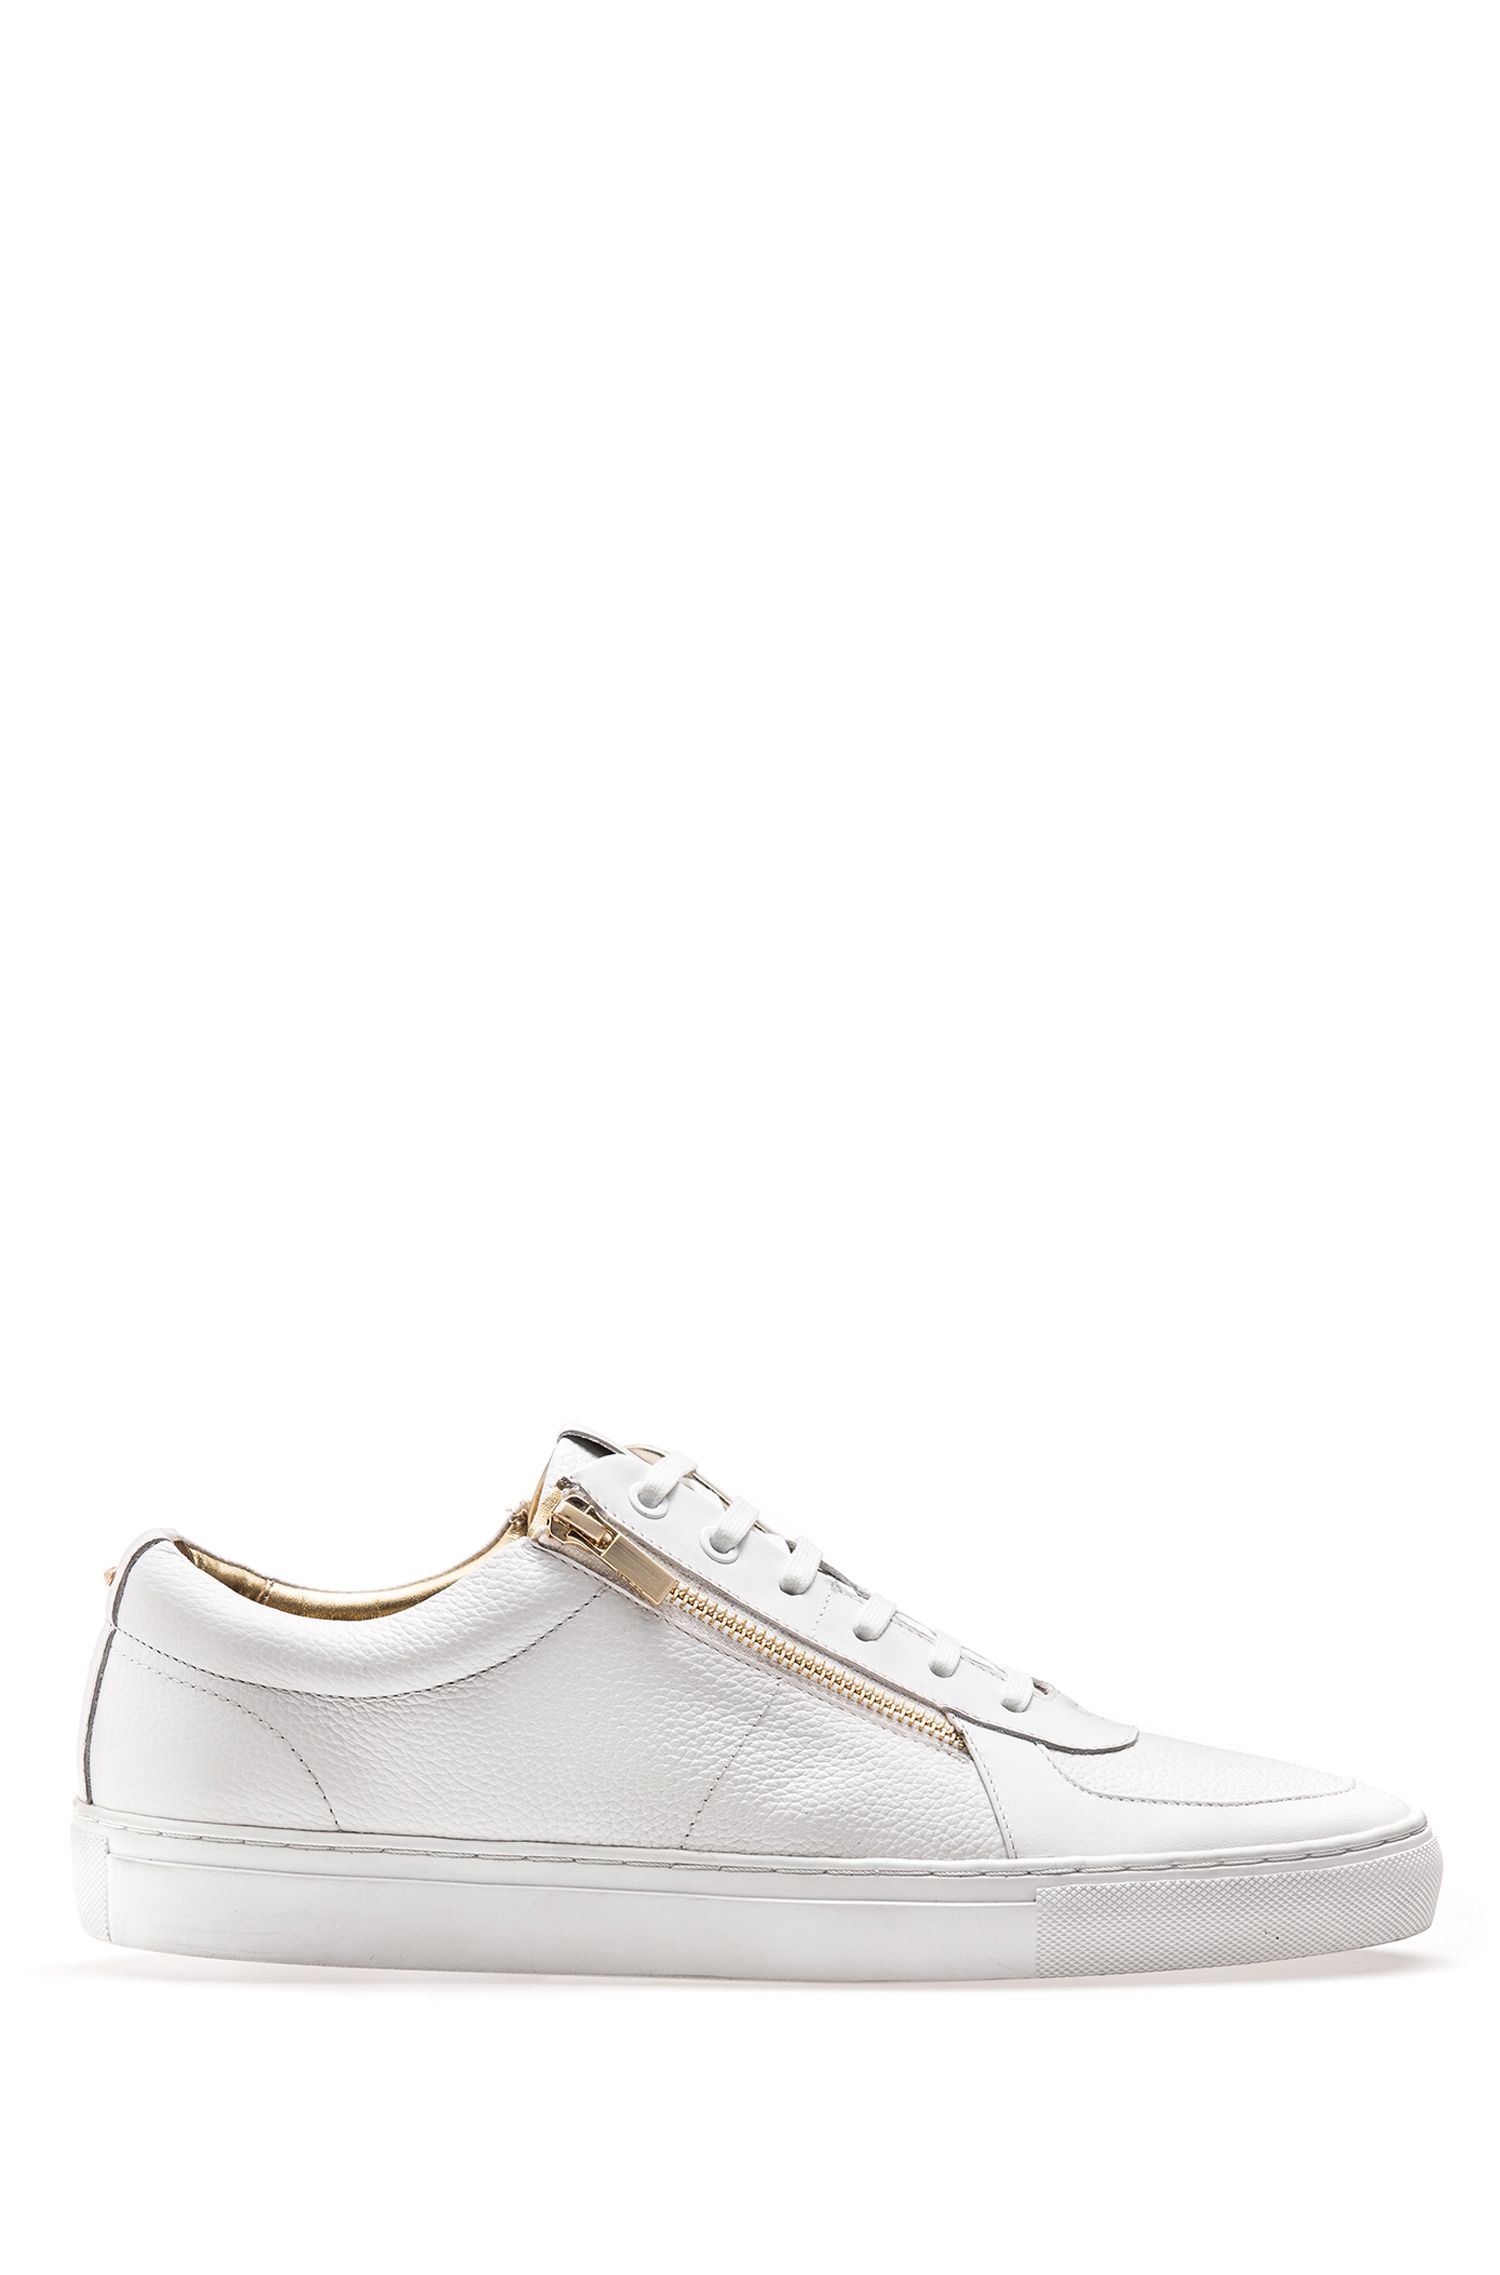 Low-top trainers in tumbled and nappa leather with double zip detail